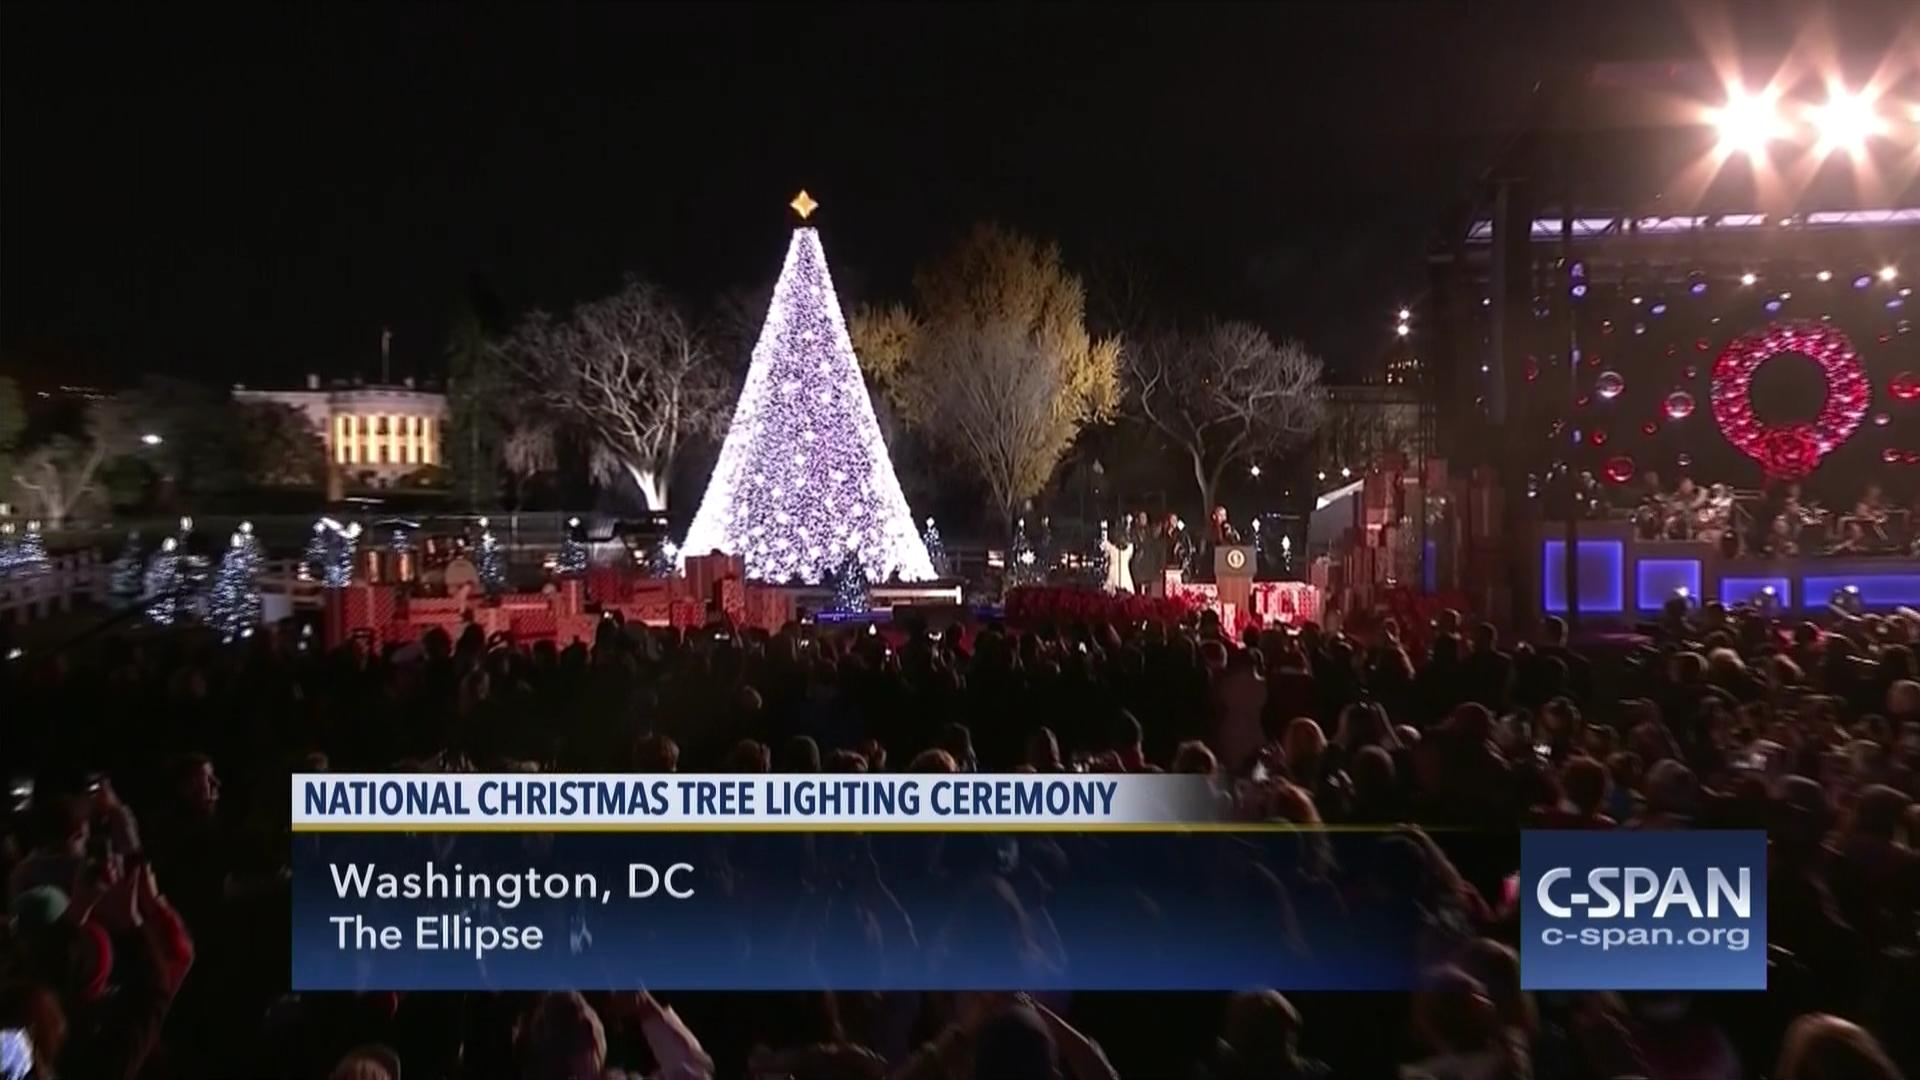 National Christmas Tree Lighting.National Christmas Tree Lighting Ceremony